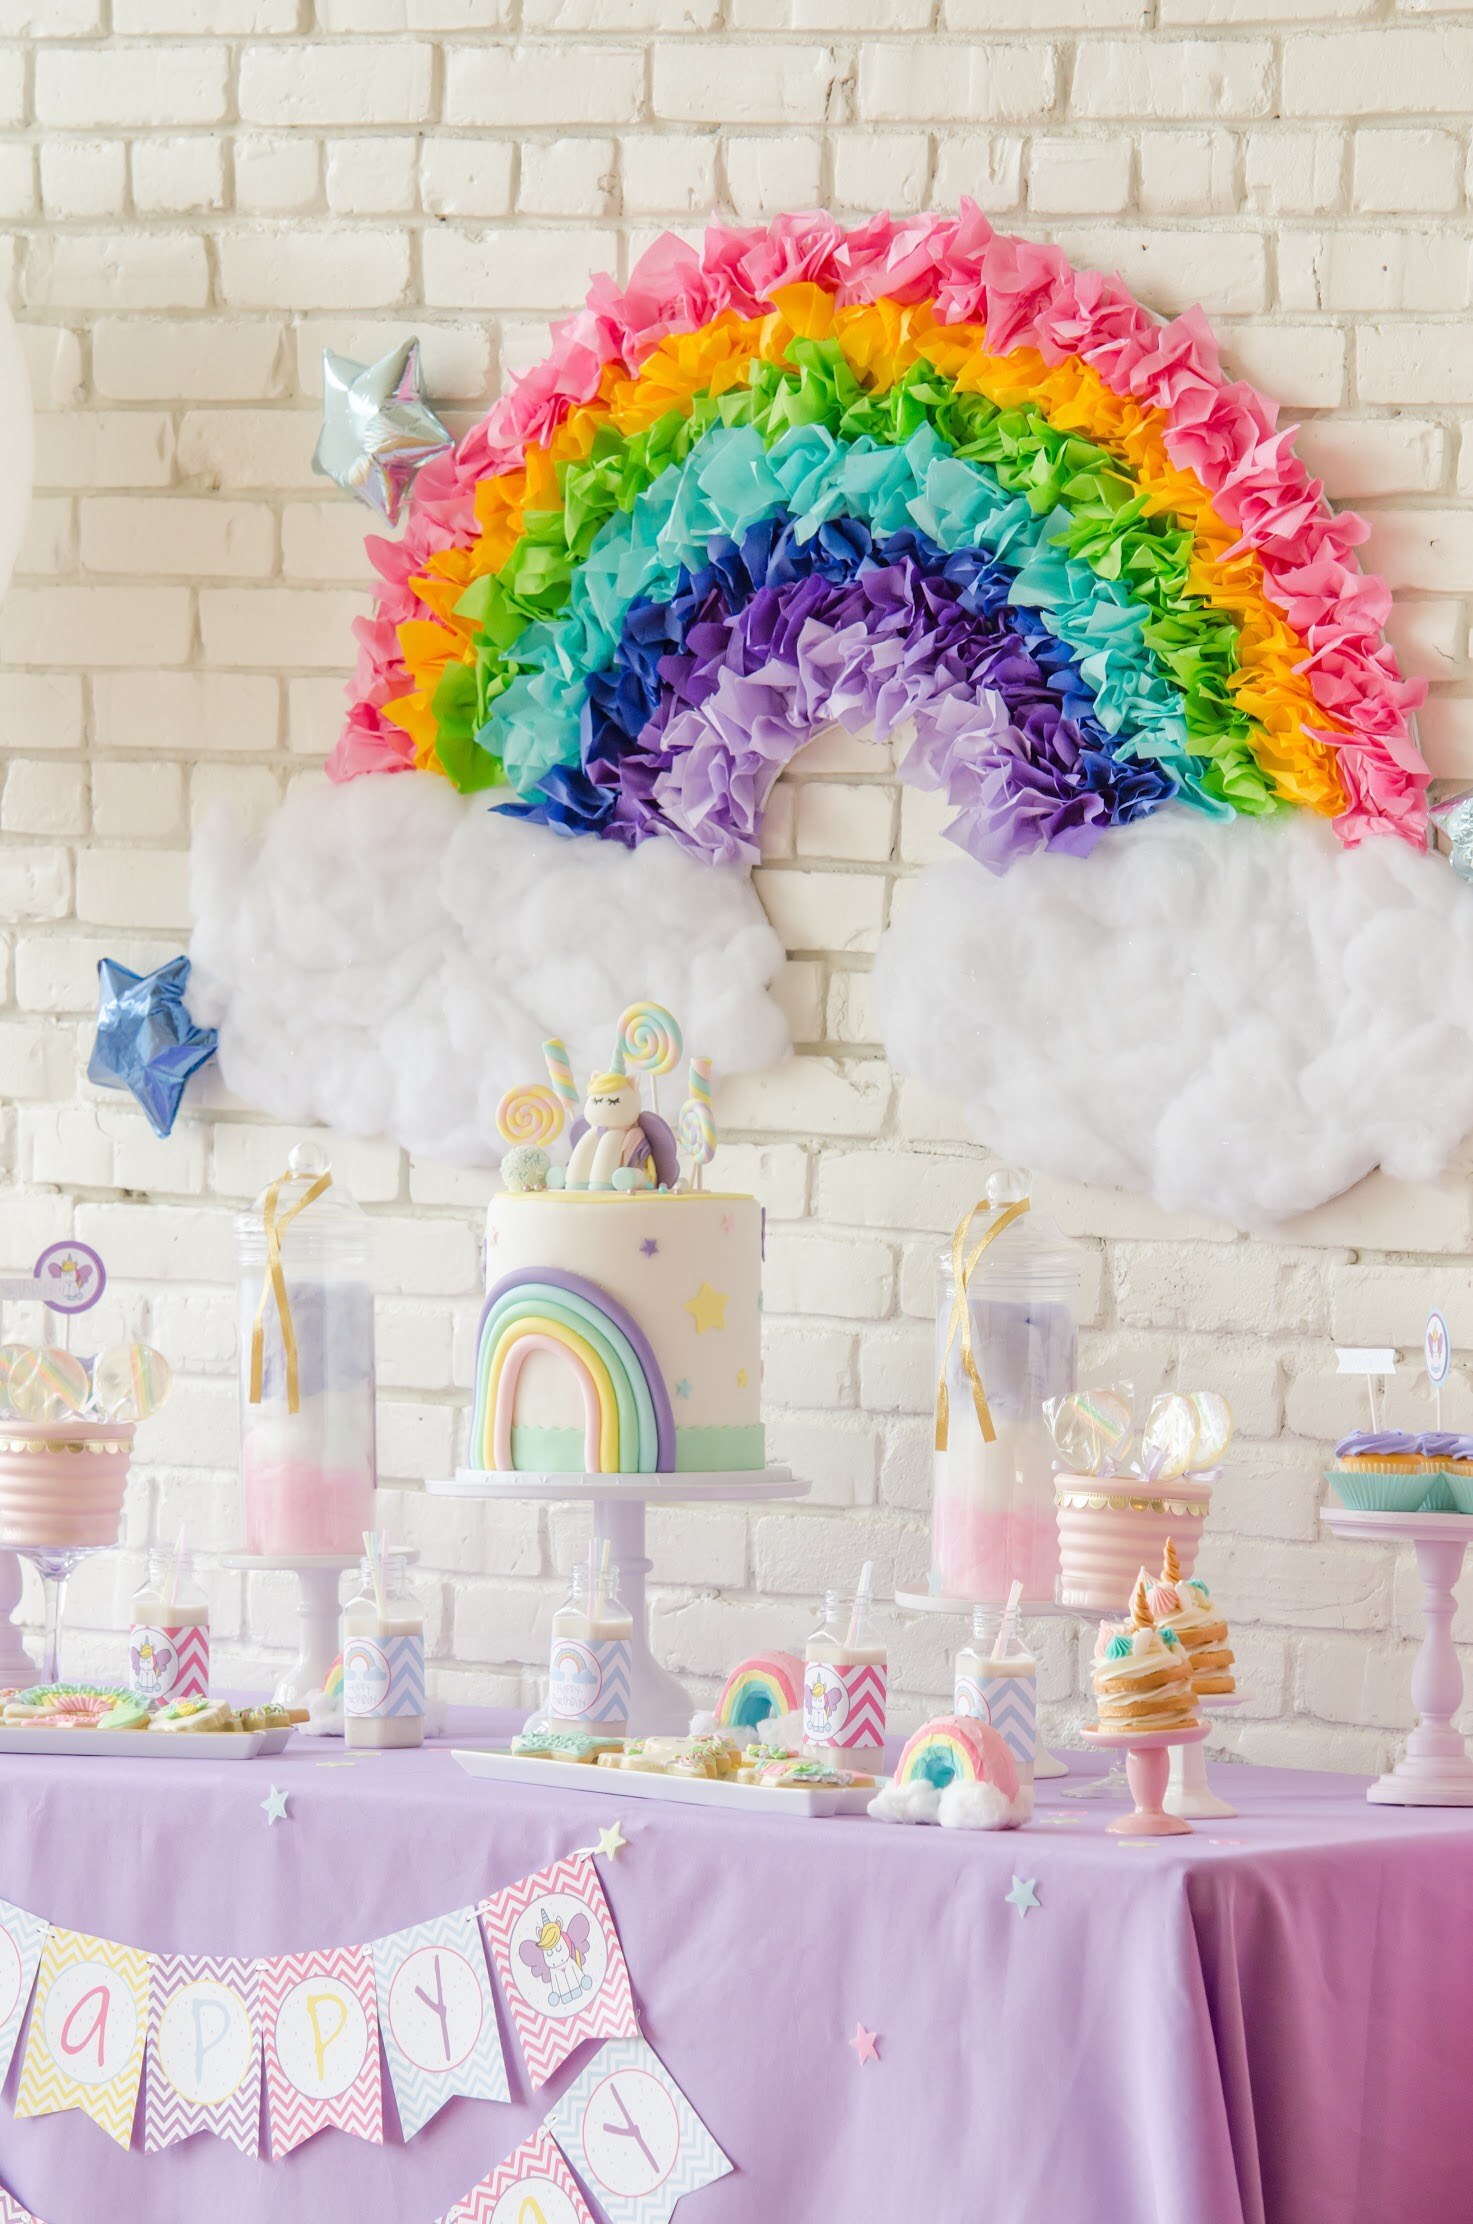 Sweet Pastel Unicorn Birthday Party ideas for girls including a DIY Rainbow Backdrop for your dessert table. Click for all the pastel rainbow party details from Mint Event Design www.minteventdesign.com #unicornparty #unicorndecor #unicorndecorations #pastelrainbow #birthdayparty #birthdaypartyideas